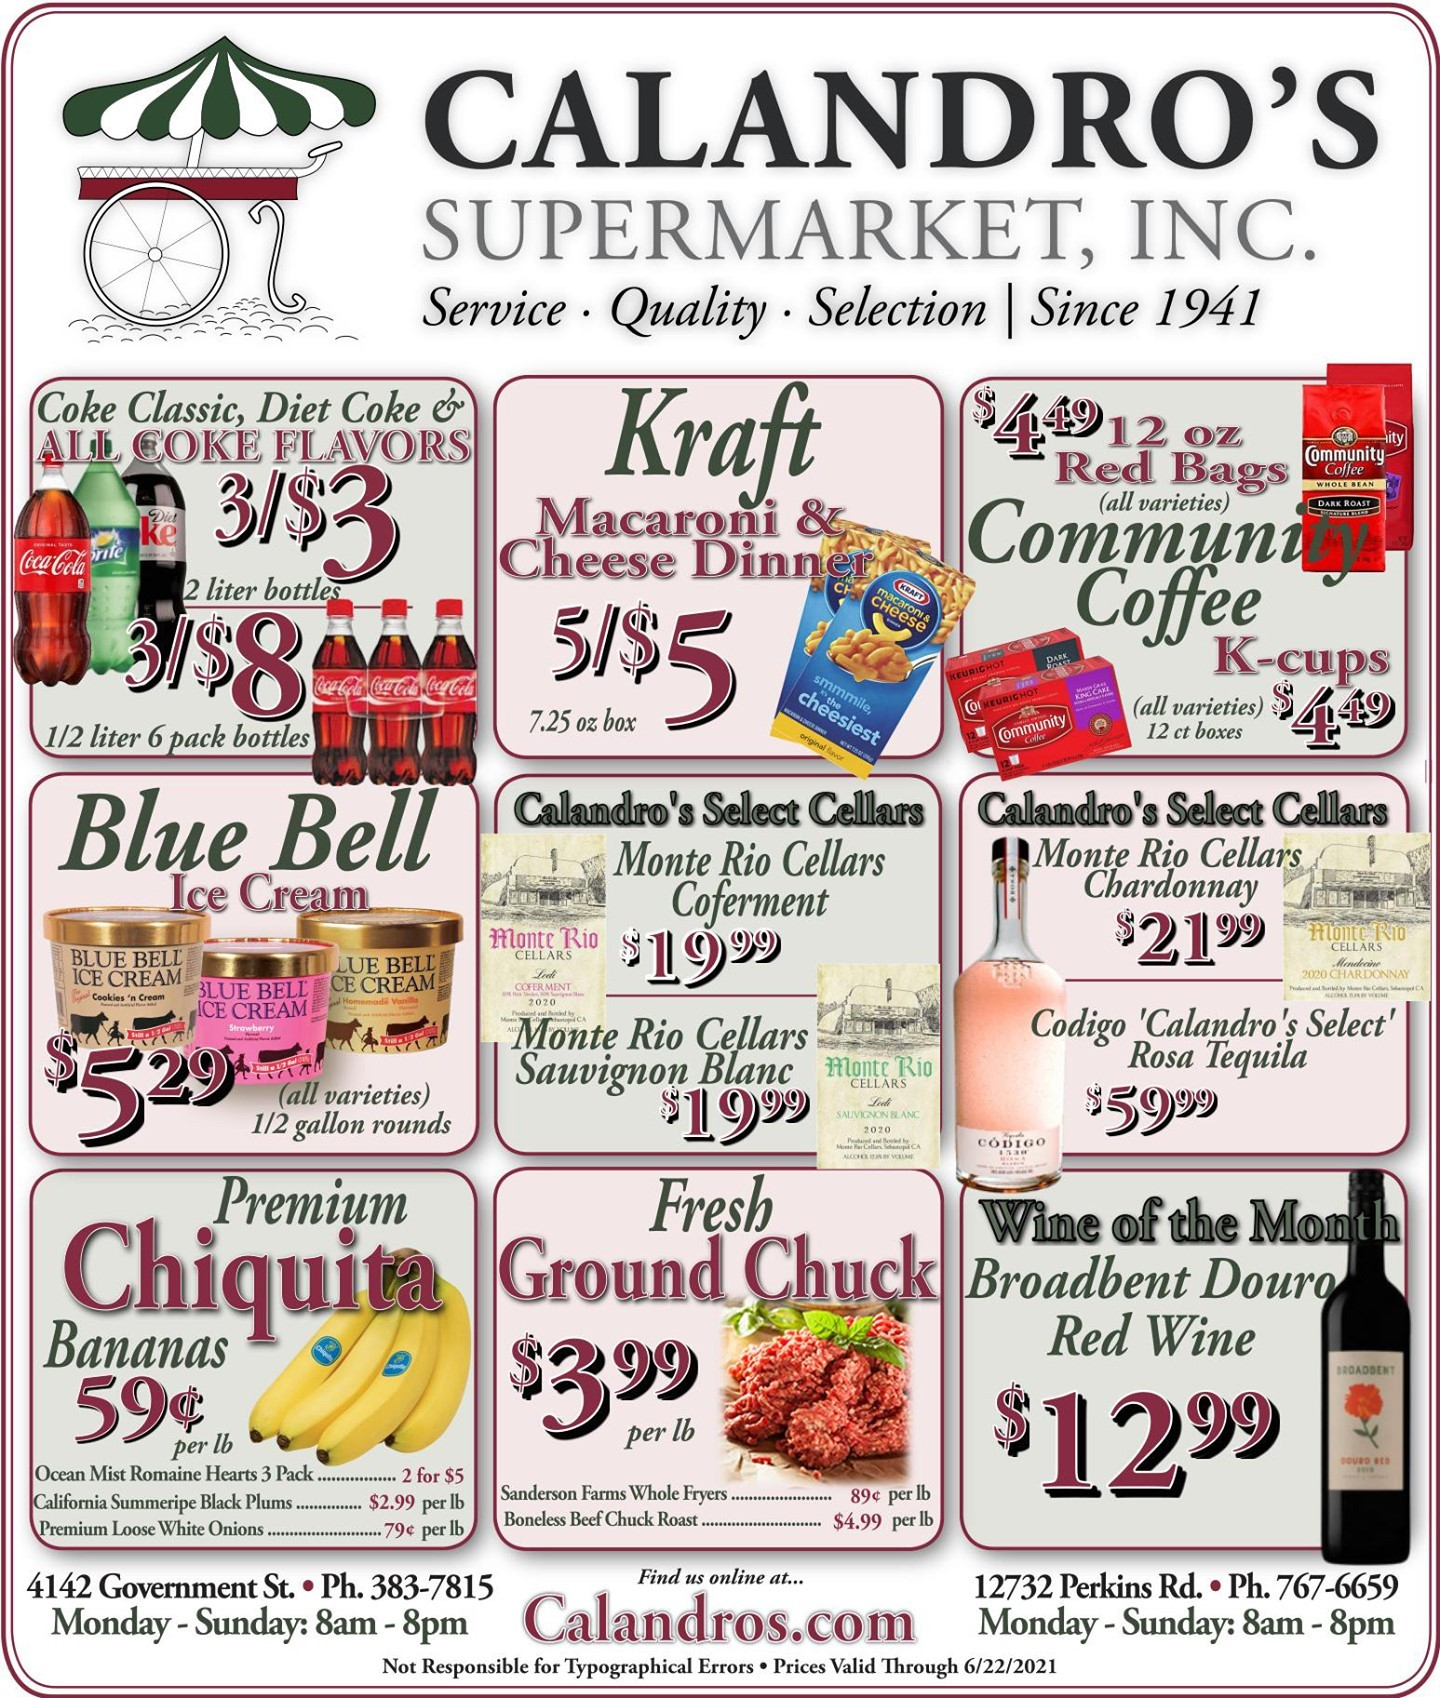 Calandro's Sensational Deals and Sales for This Week! (6/17/2021 – 6/22/2021) http://dlvr.it/S1tg4h…